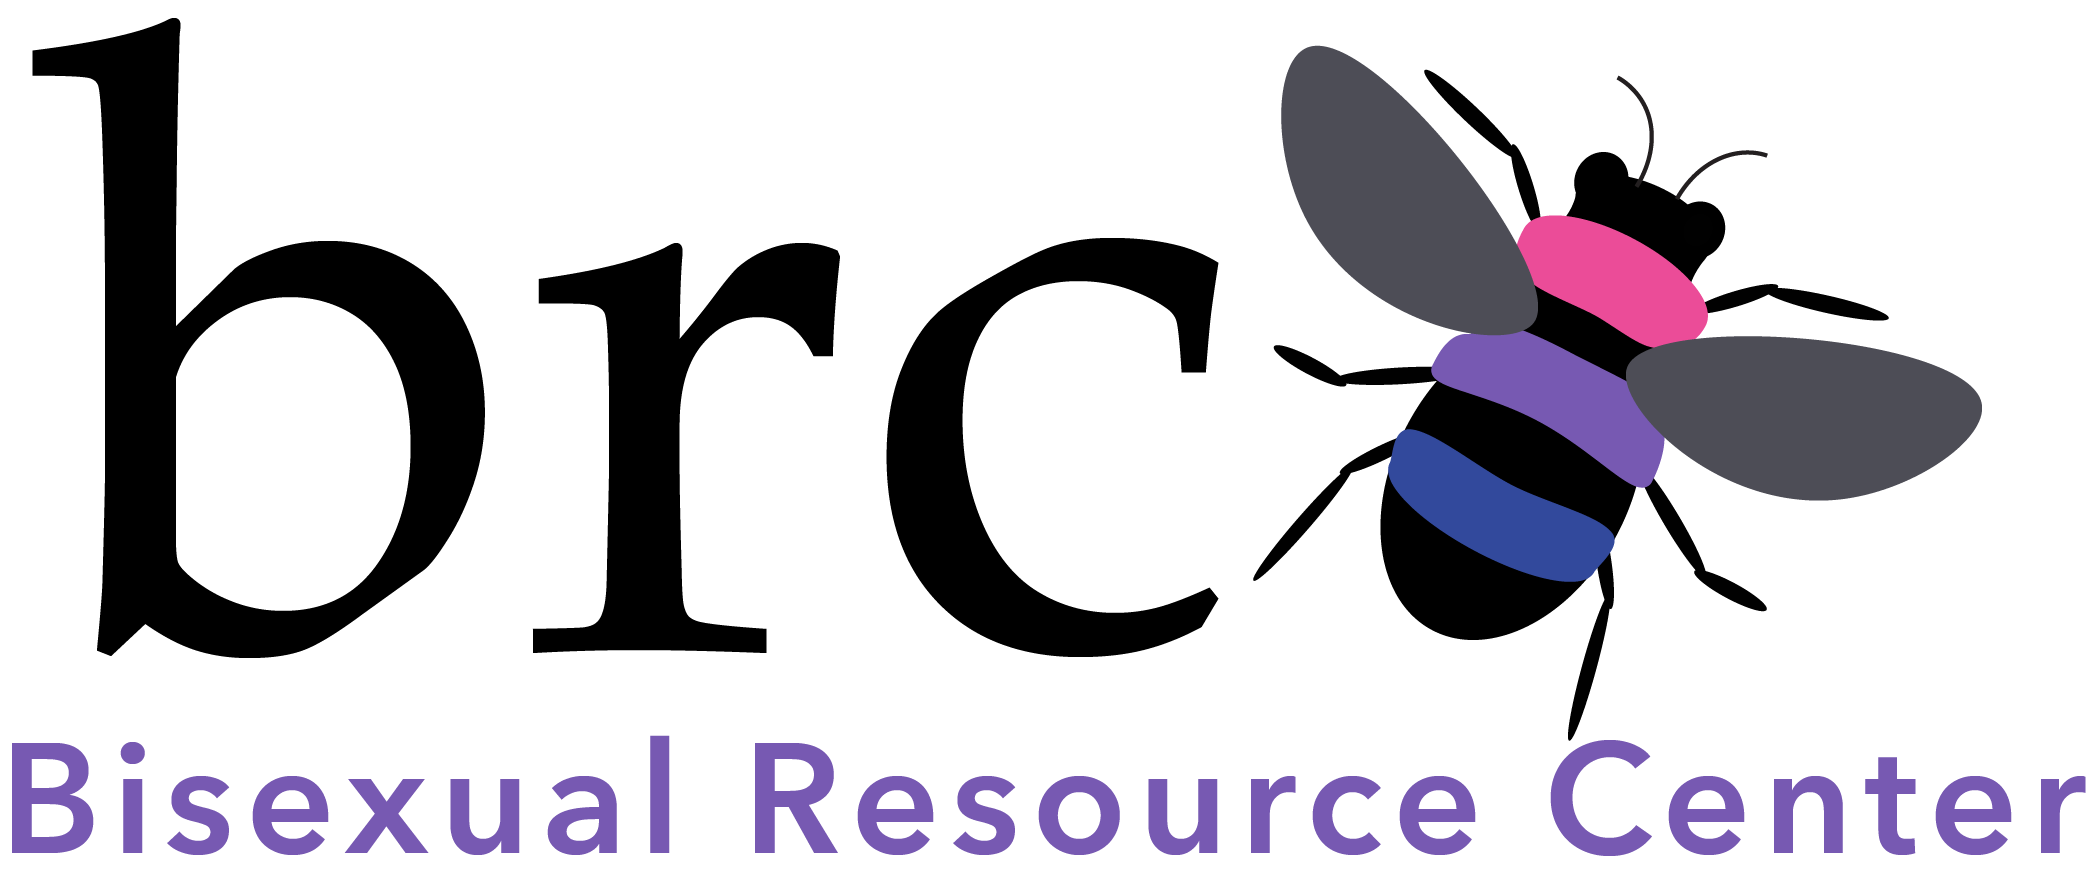 New jersey bisexual resources